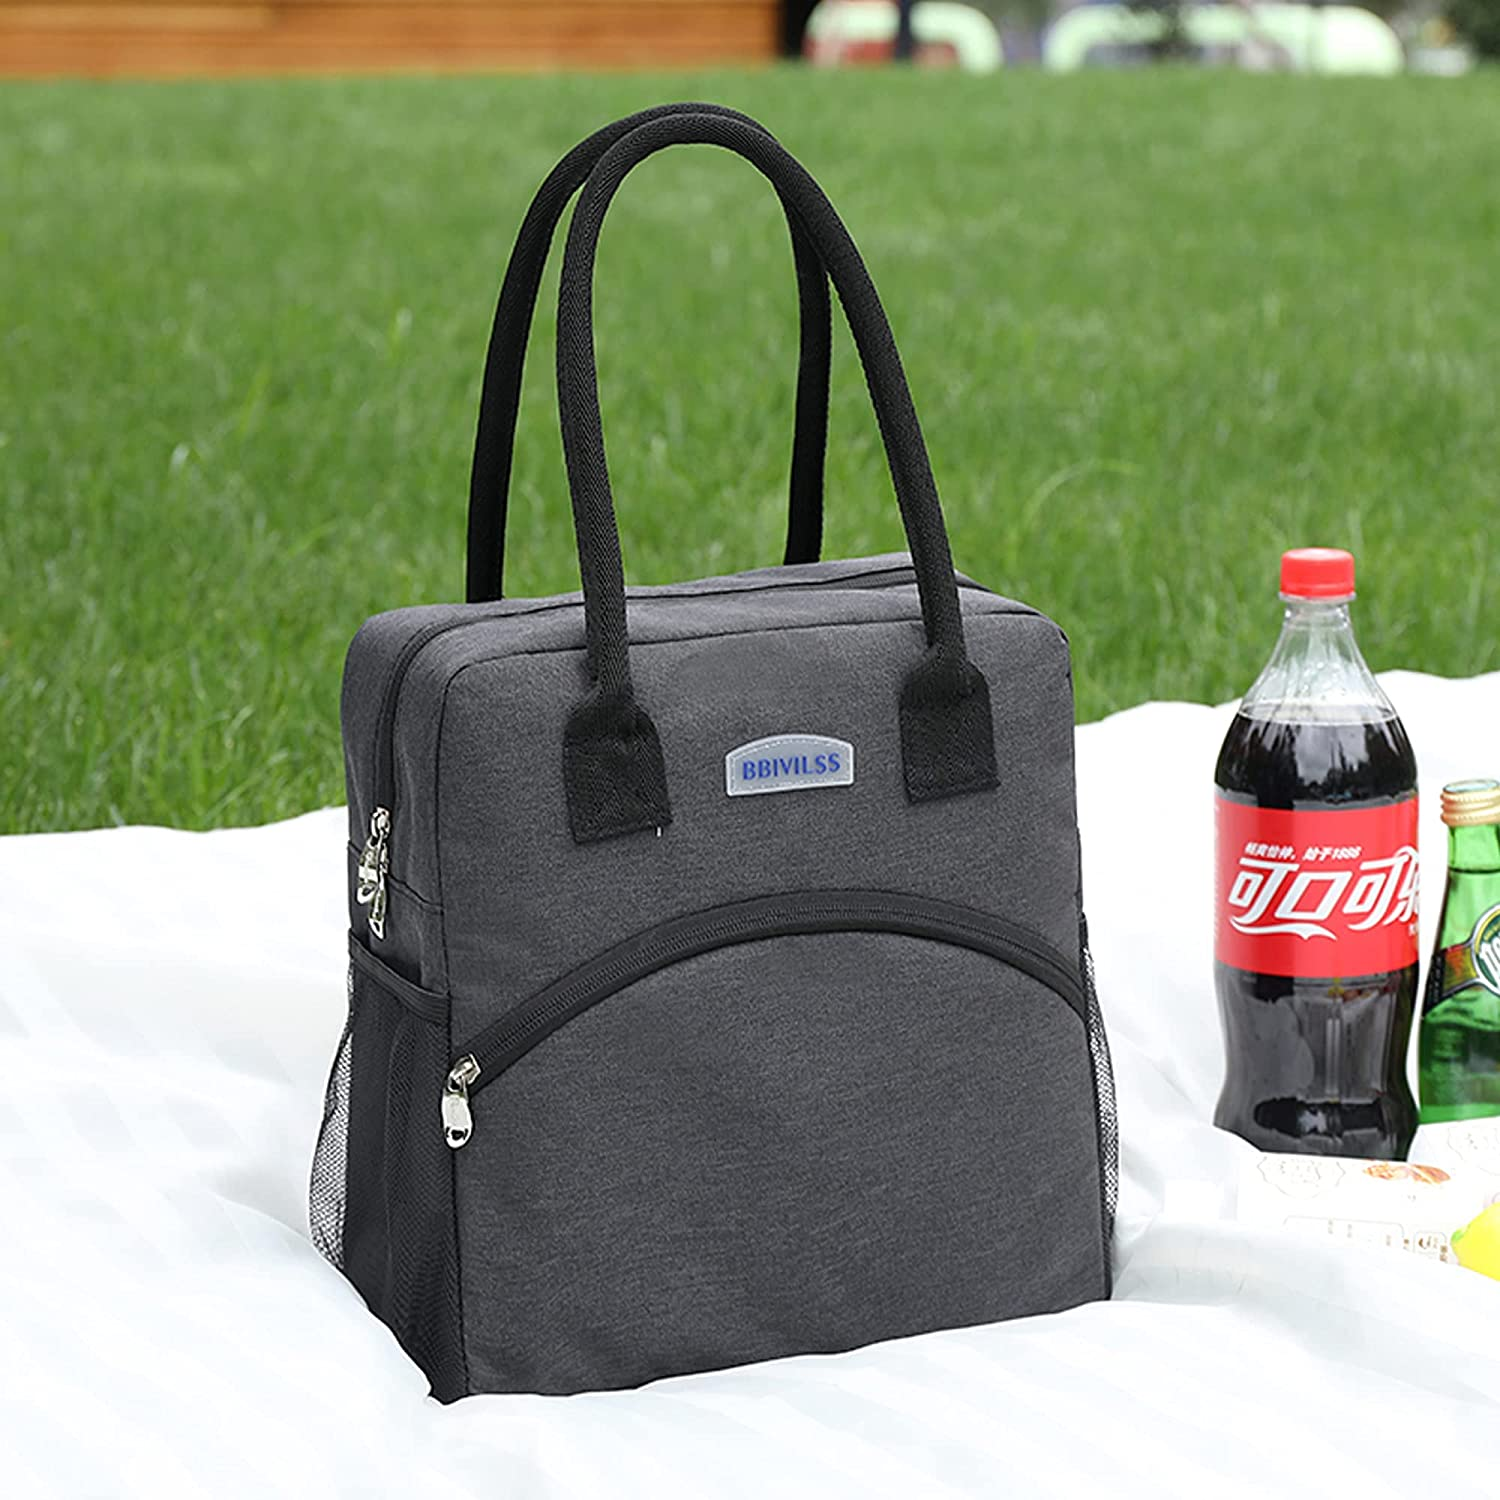 Insulated Lunch Bag for Women Men Tote Bag Large Handbag Cooler bag with Zipper Lunch Box for Work School Shopping Picnic Hiking Beach Fishing